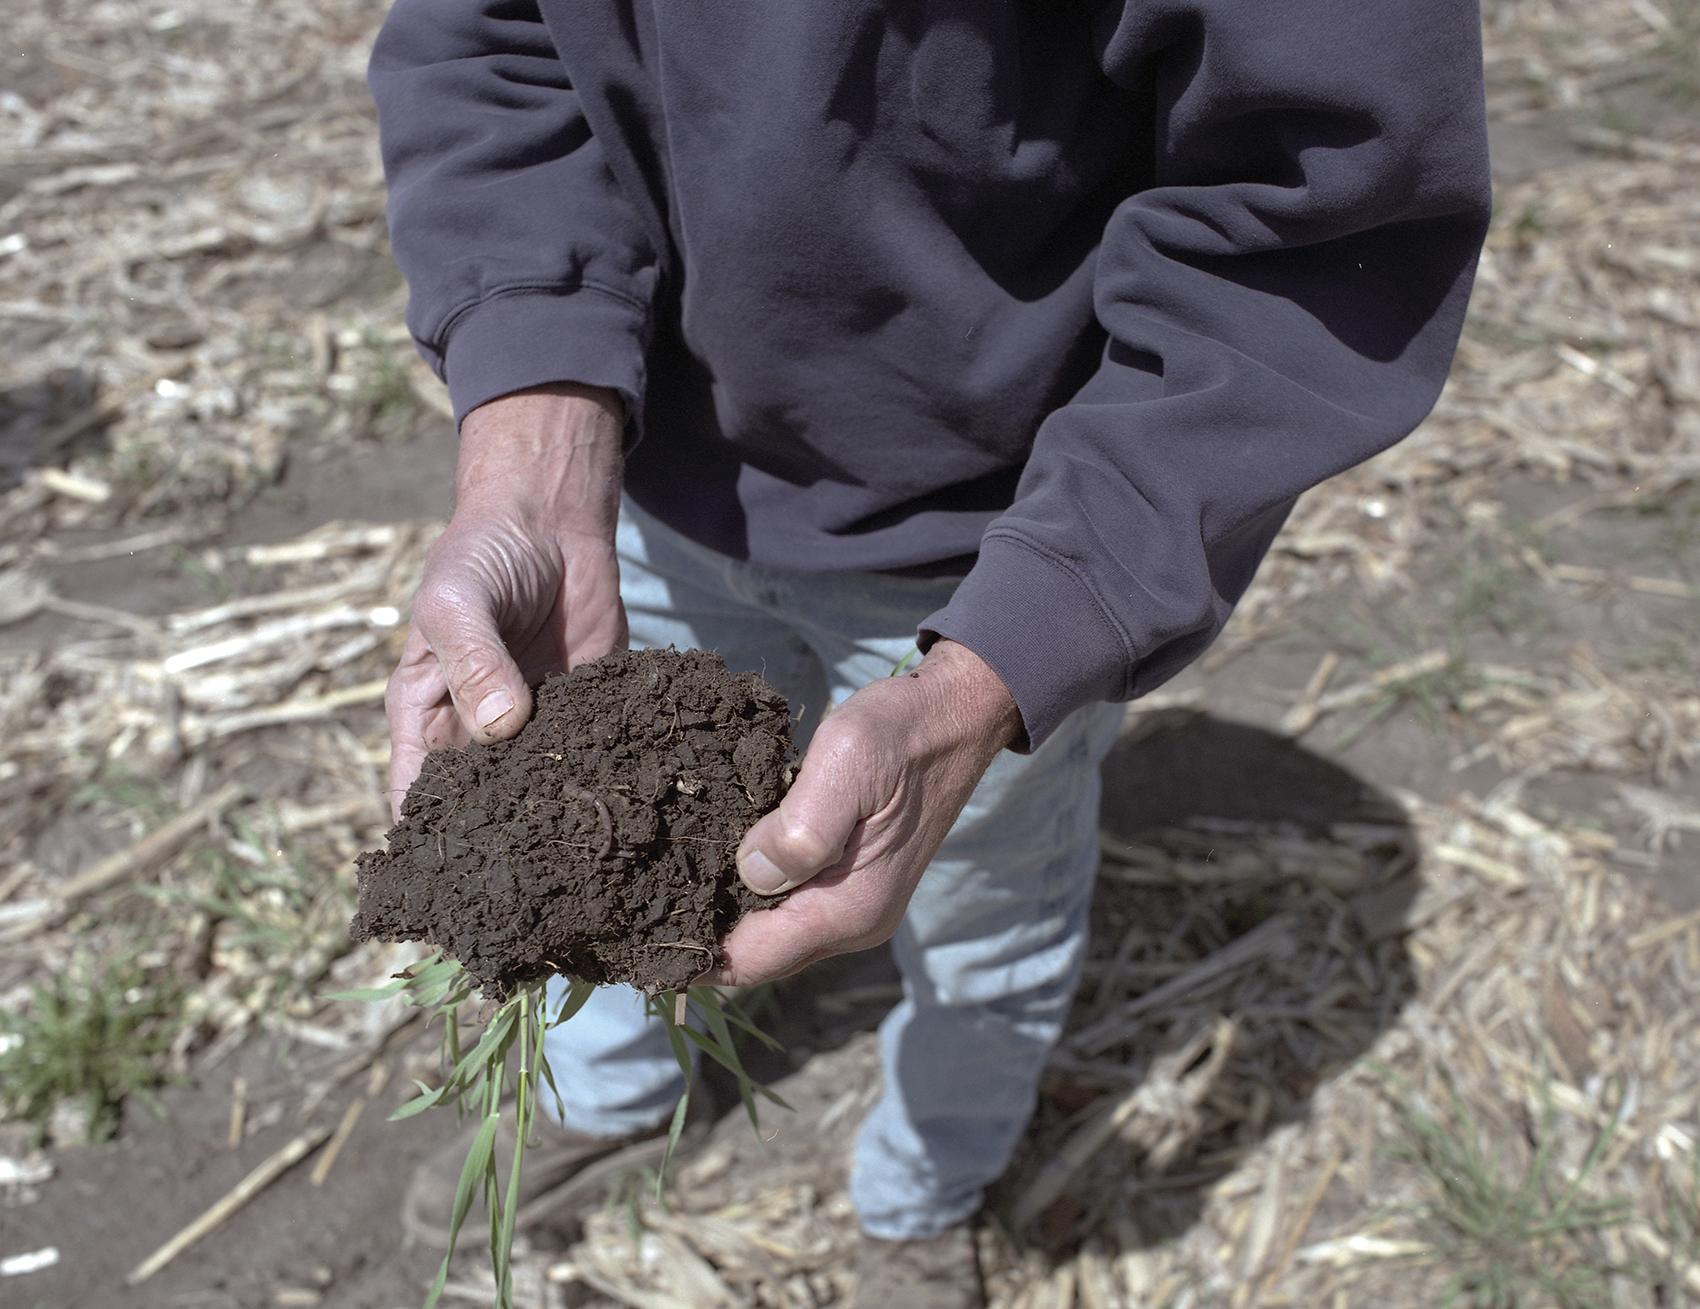 With a dirt stained spade Tim Little scythes through the topsoil, levering up clods of earth, prying them apart to show earthworms and new root systems. There are other benefits to cover crops, but they're hard to quantify, and happen over a long timeframe. After five to seven years farmers report better soil health, and a higher yield in their primary crops of corn and soybean.